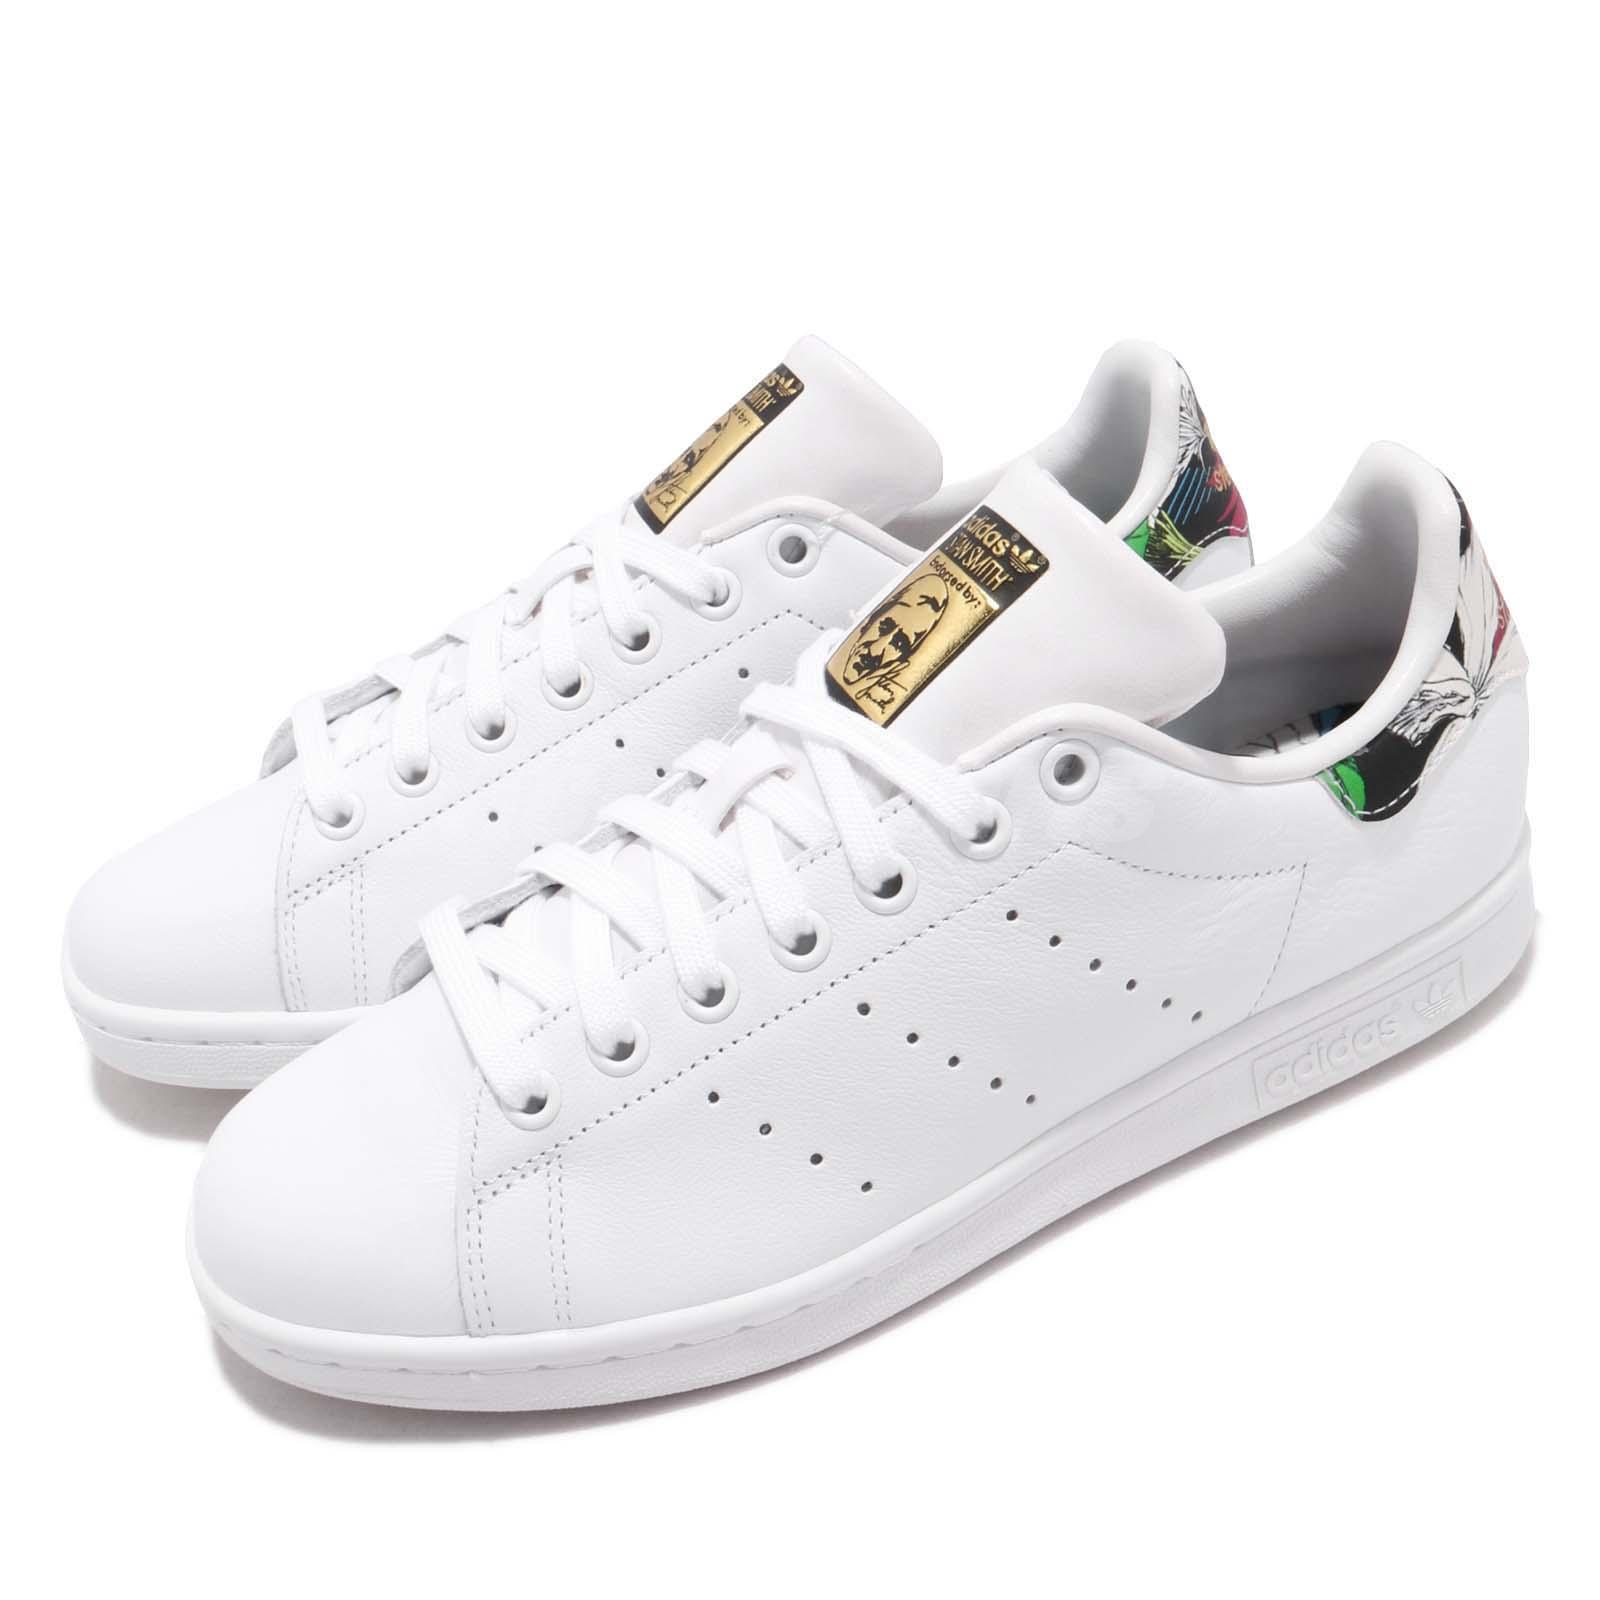 cc36c7a469b Details about adidas Originals Stan Smith W White Gold Mint Floral Women  Casual Shoes BB7778